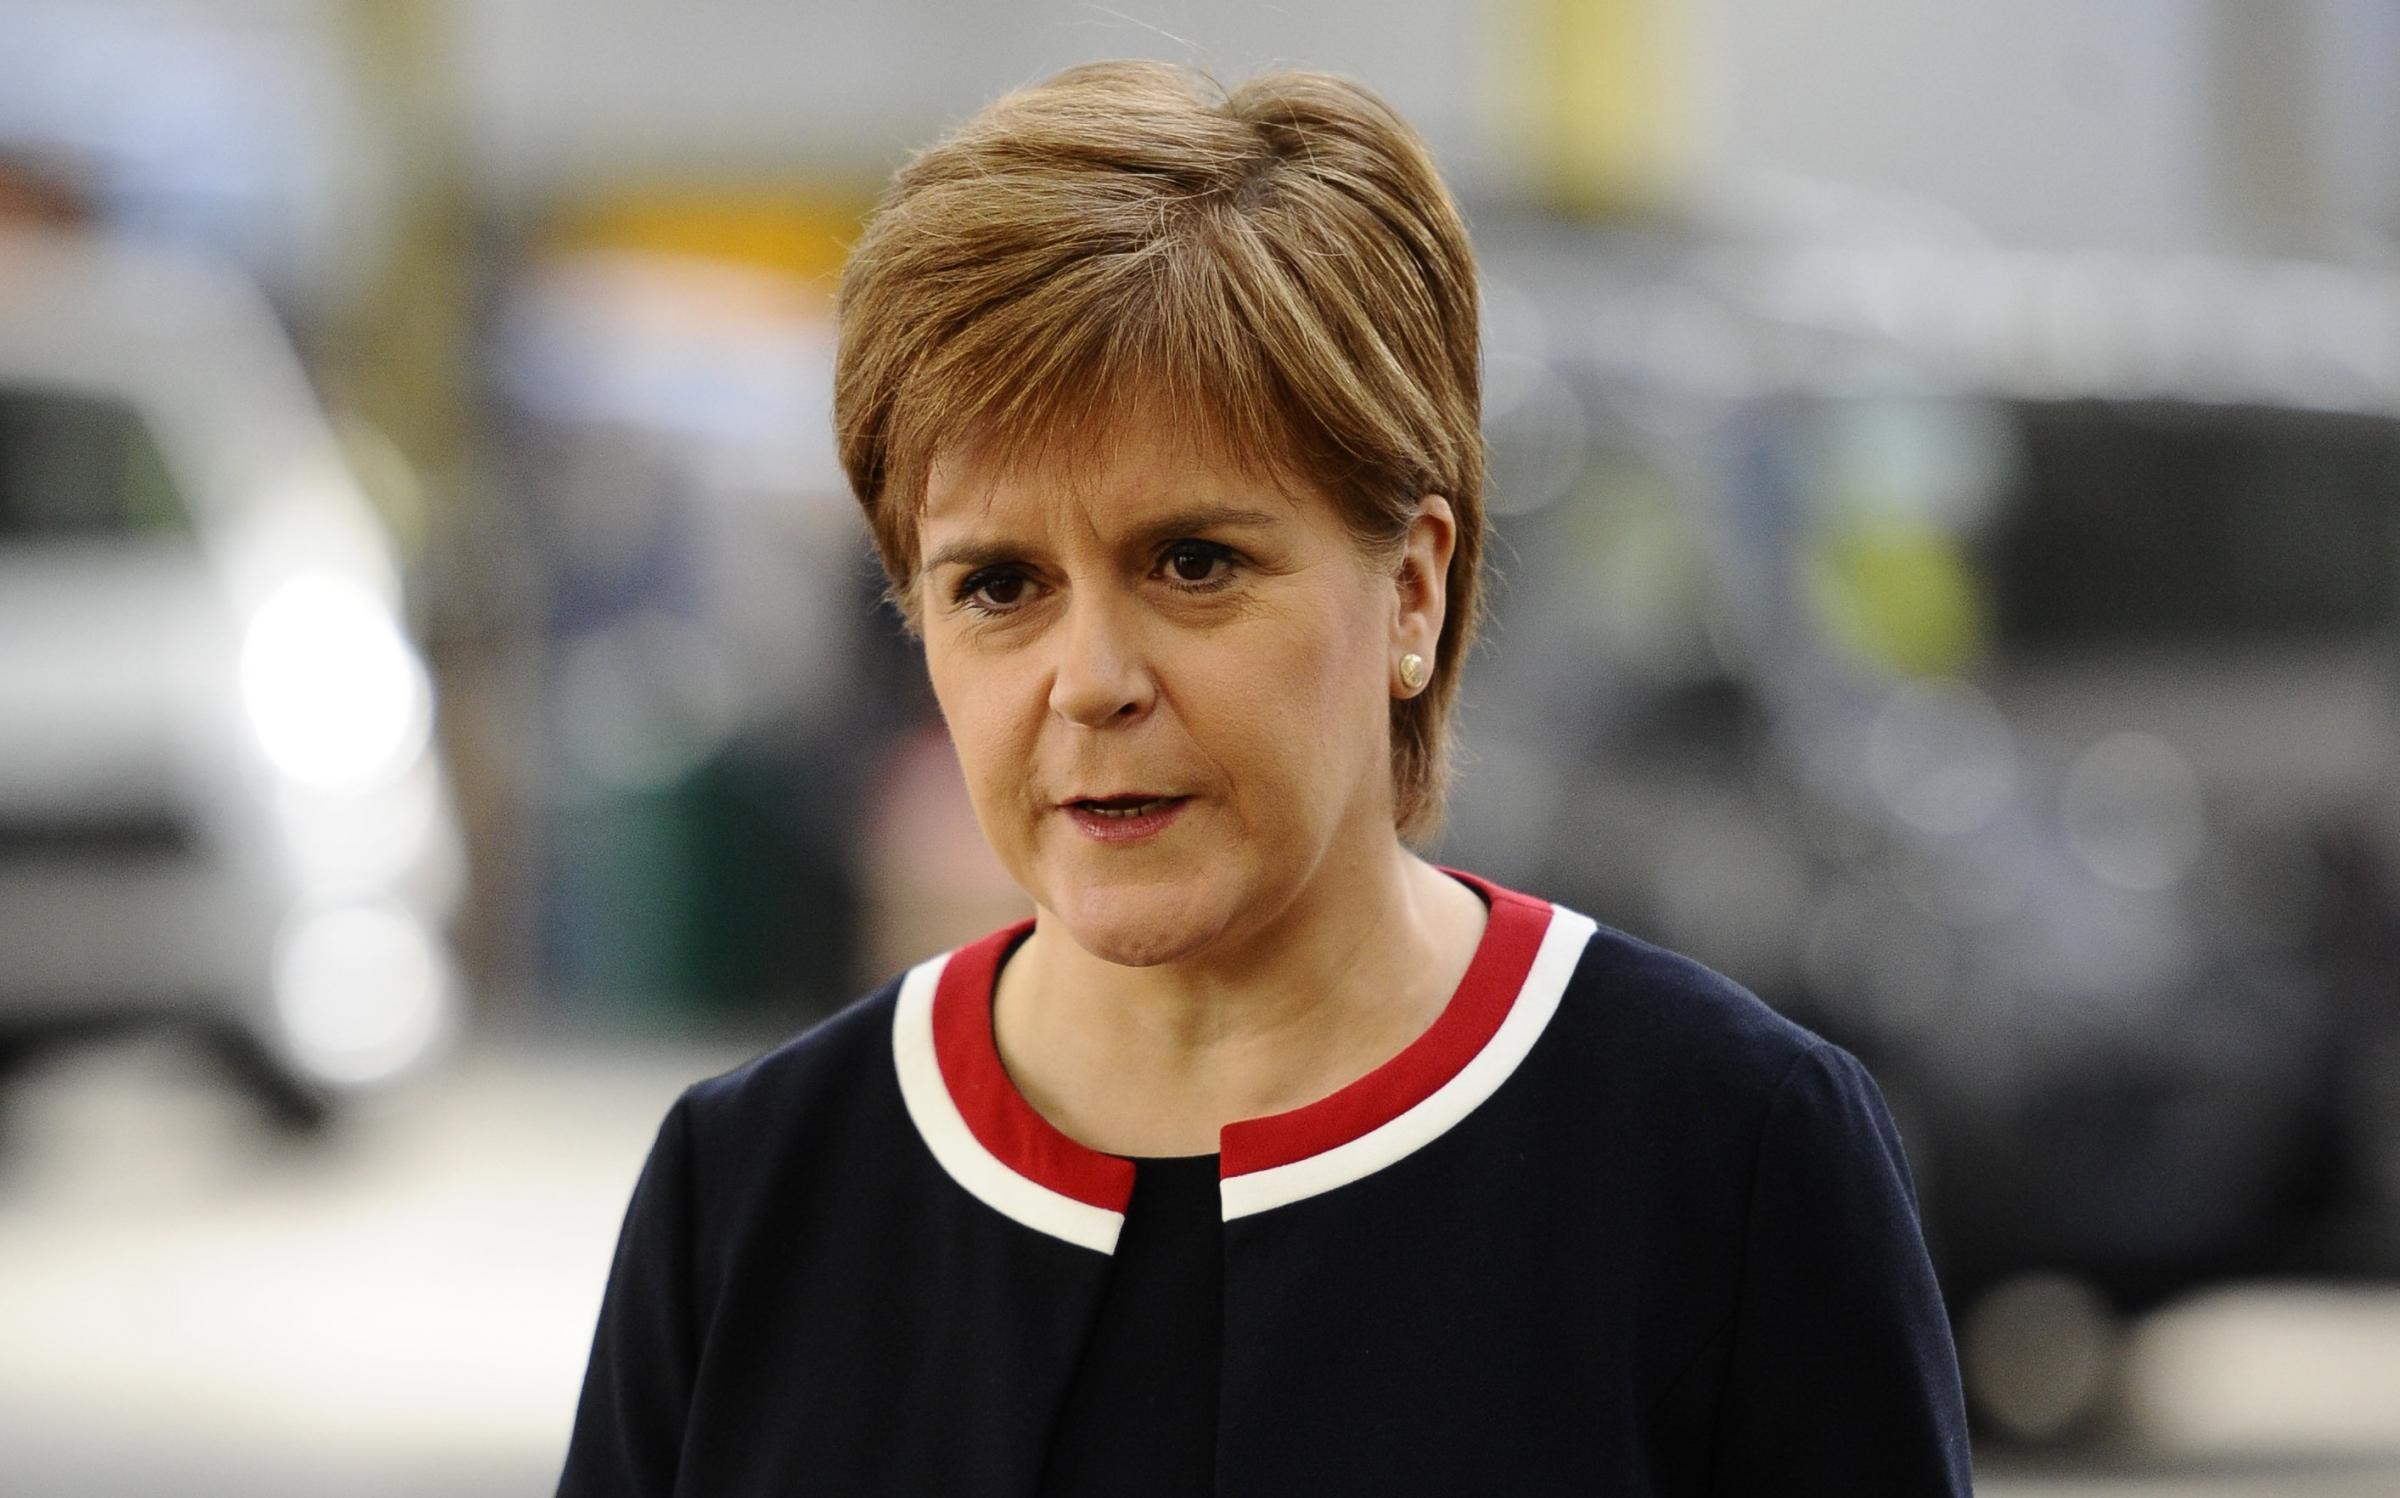 Nicola Sturgeon slams Tory attempt to bribe DUP over May's deal